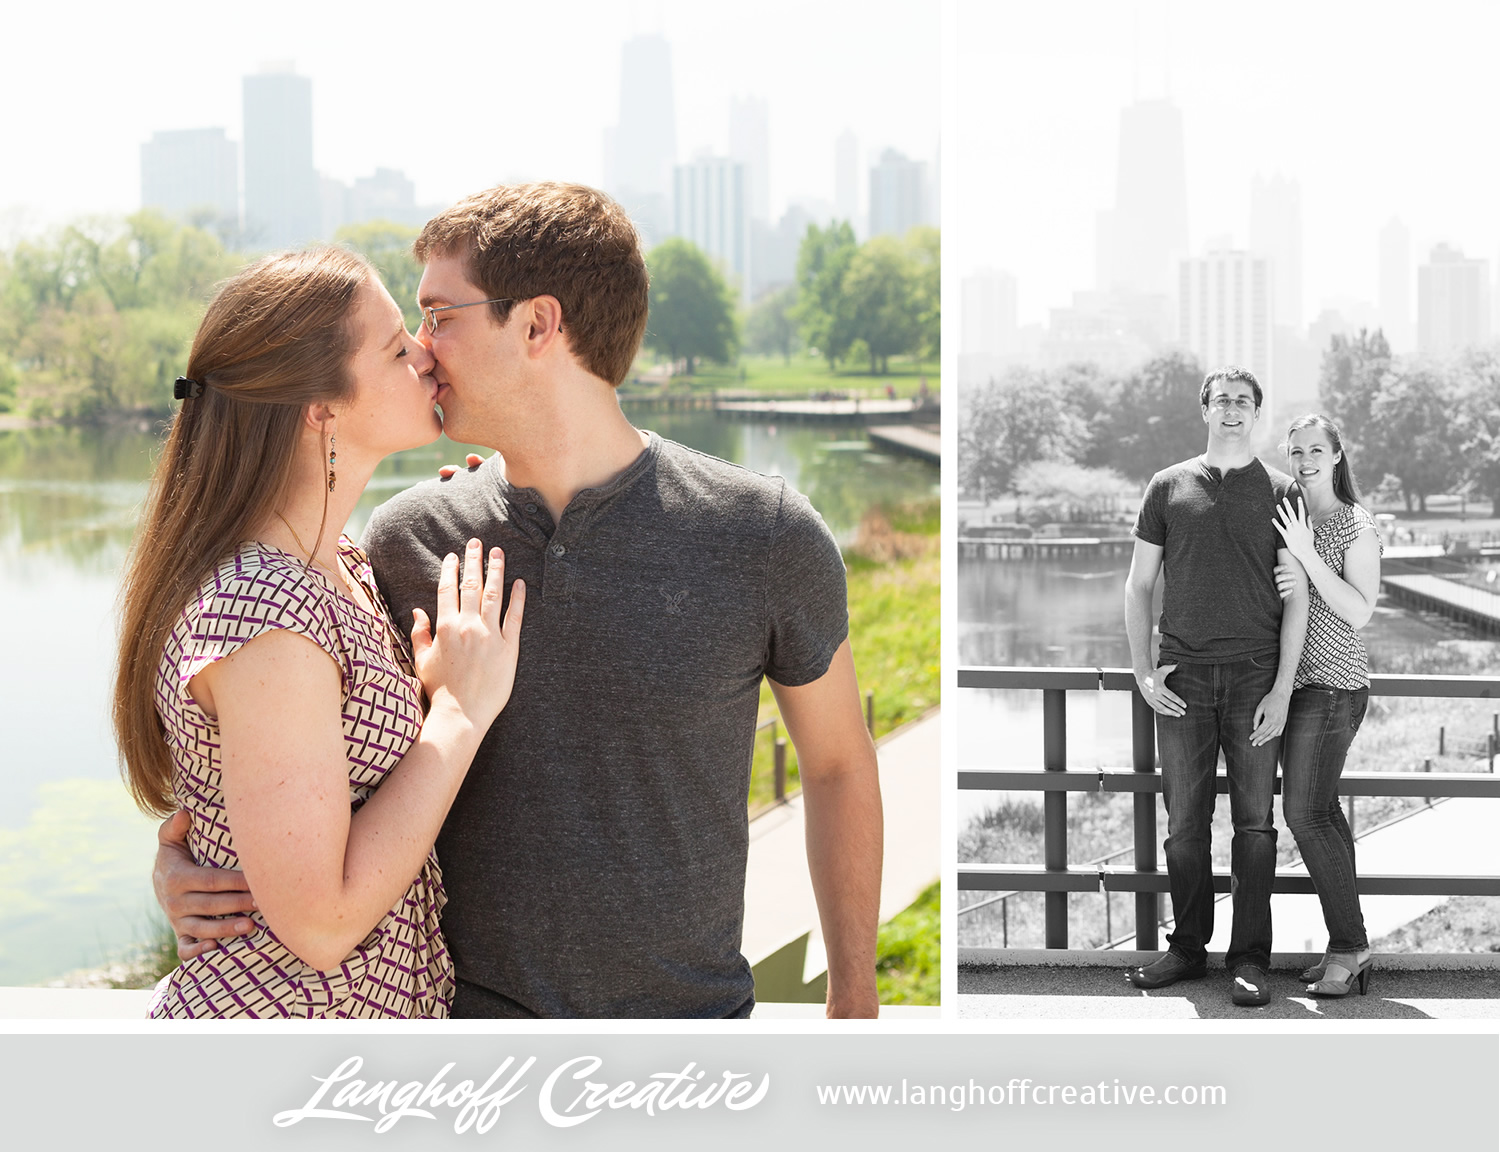 ChicagoEngagement-LincolnParkZoo-Engaged-LanghoffCreative-DestinationWeddingPhotographers-2014-ZacRachel-4-photo.jpg